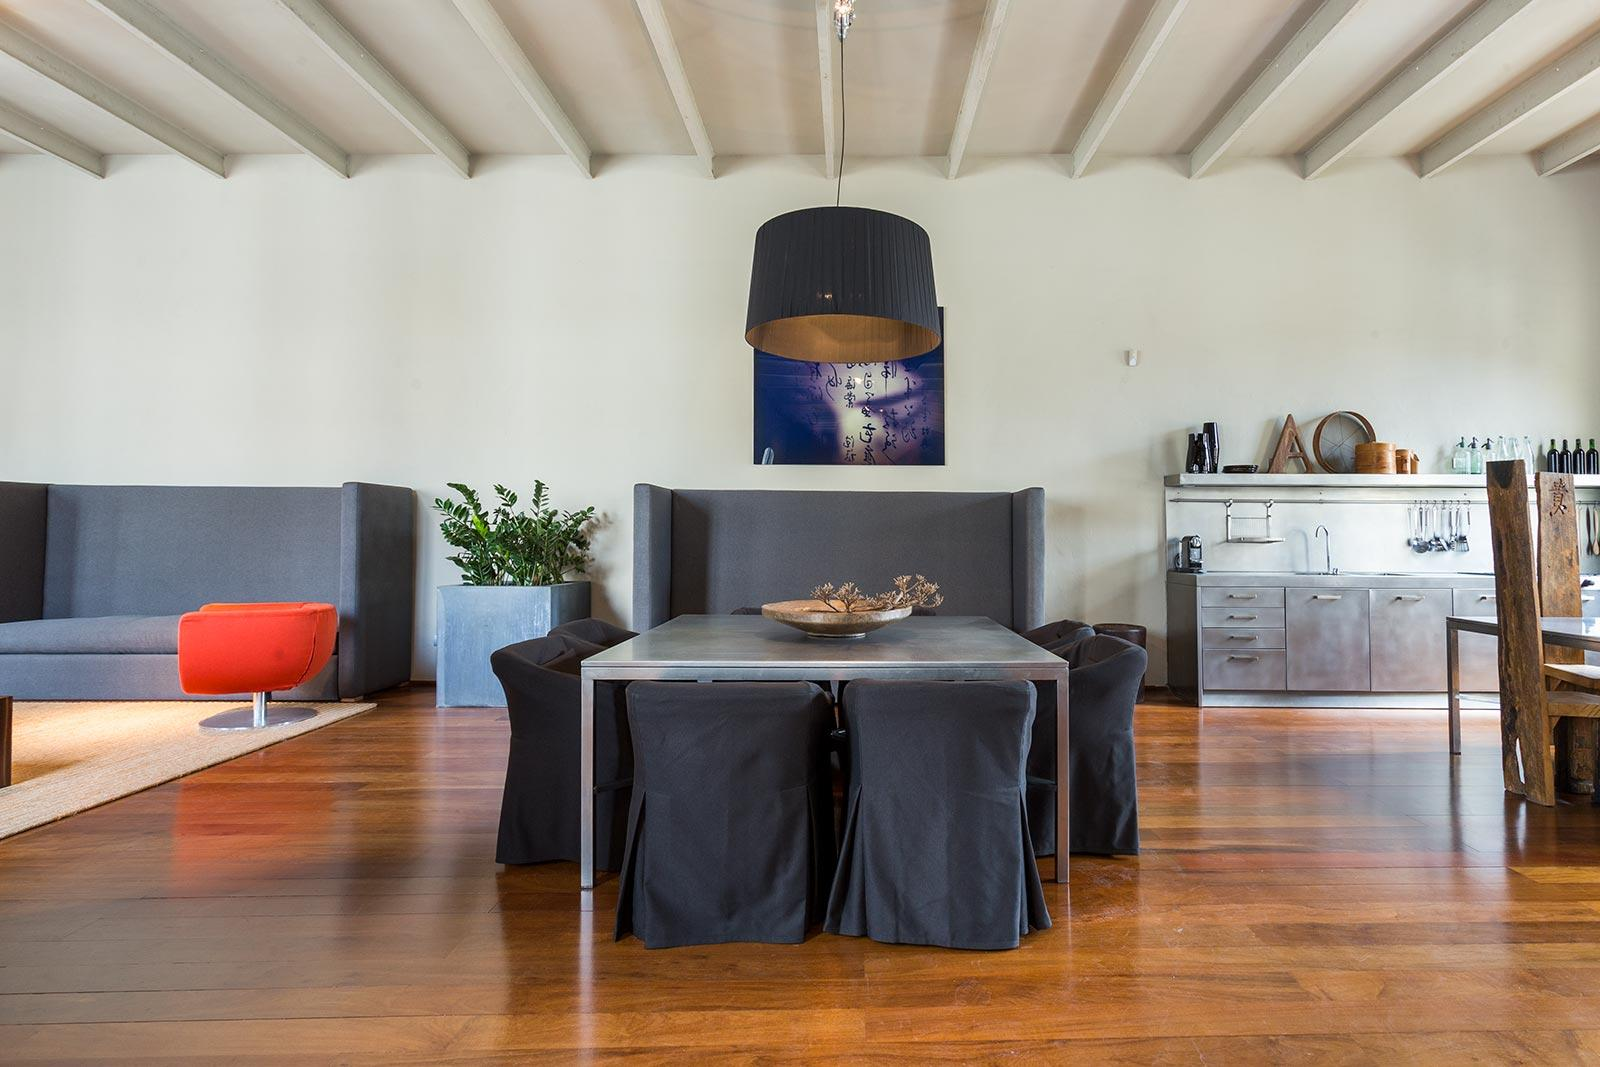 6. Stylish apartment for sale in Barcelona city - Step Inside A One-Of-A-Kind Barcelona Apartment